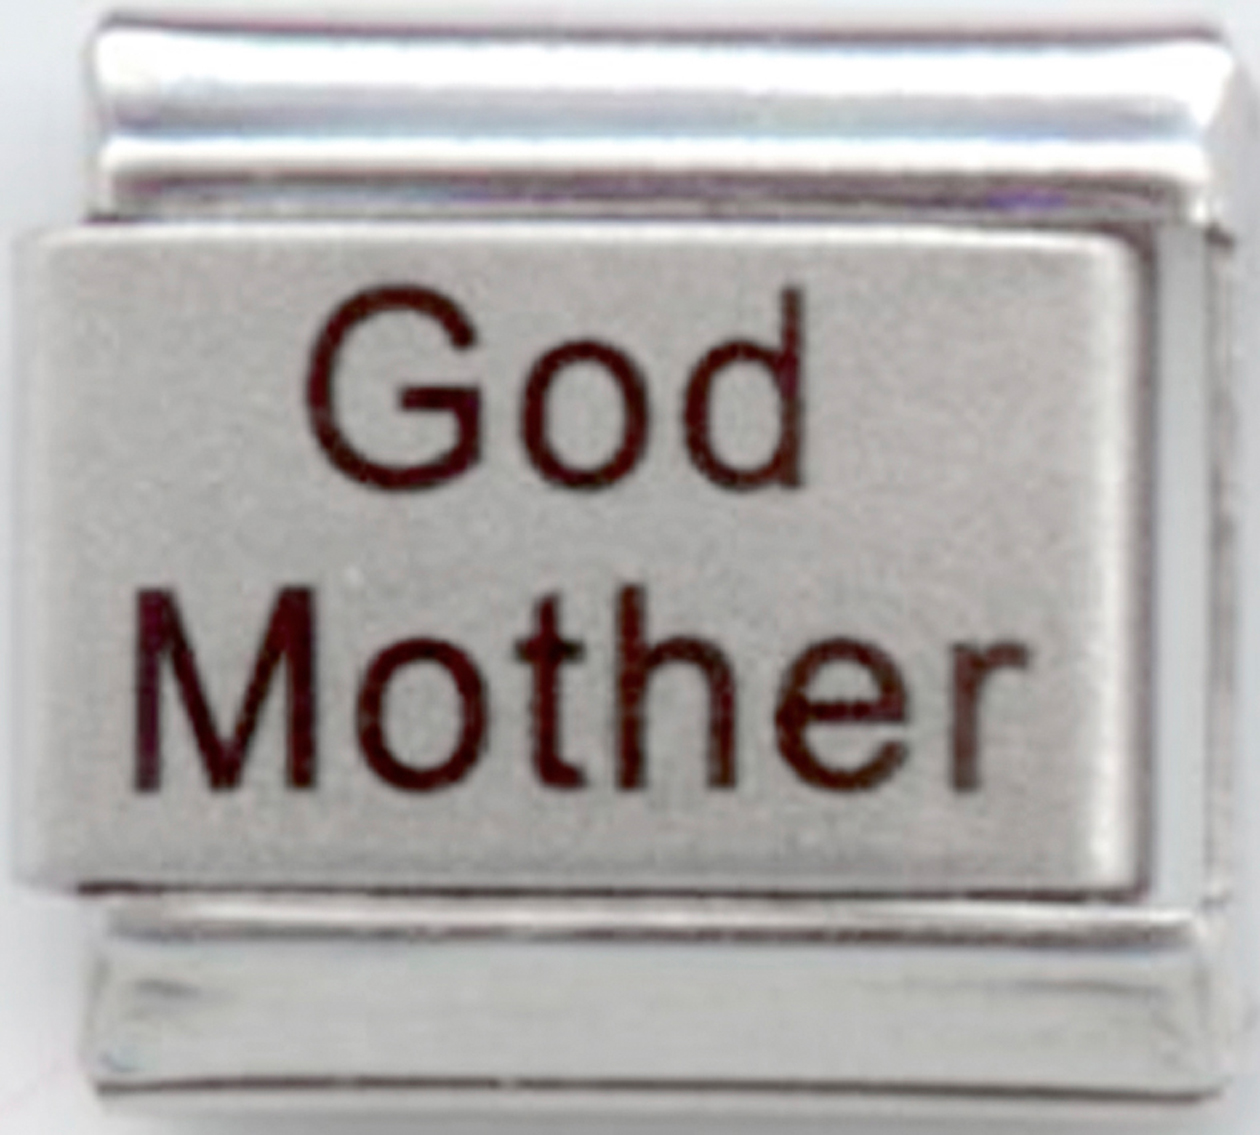 LC026-God-Mother